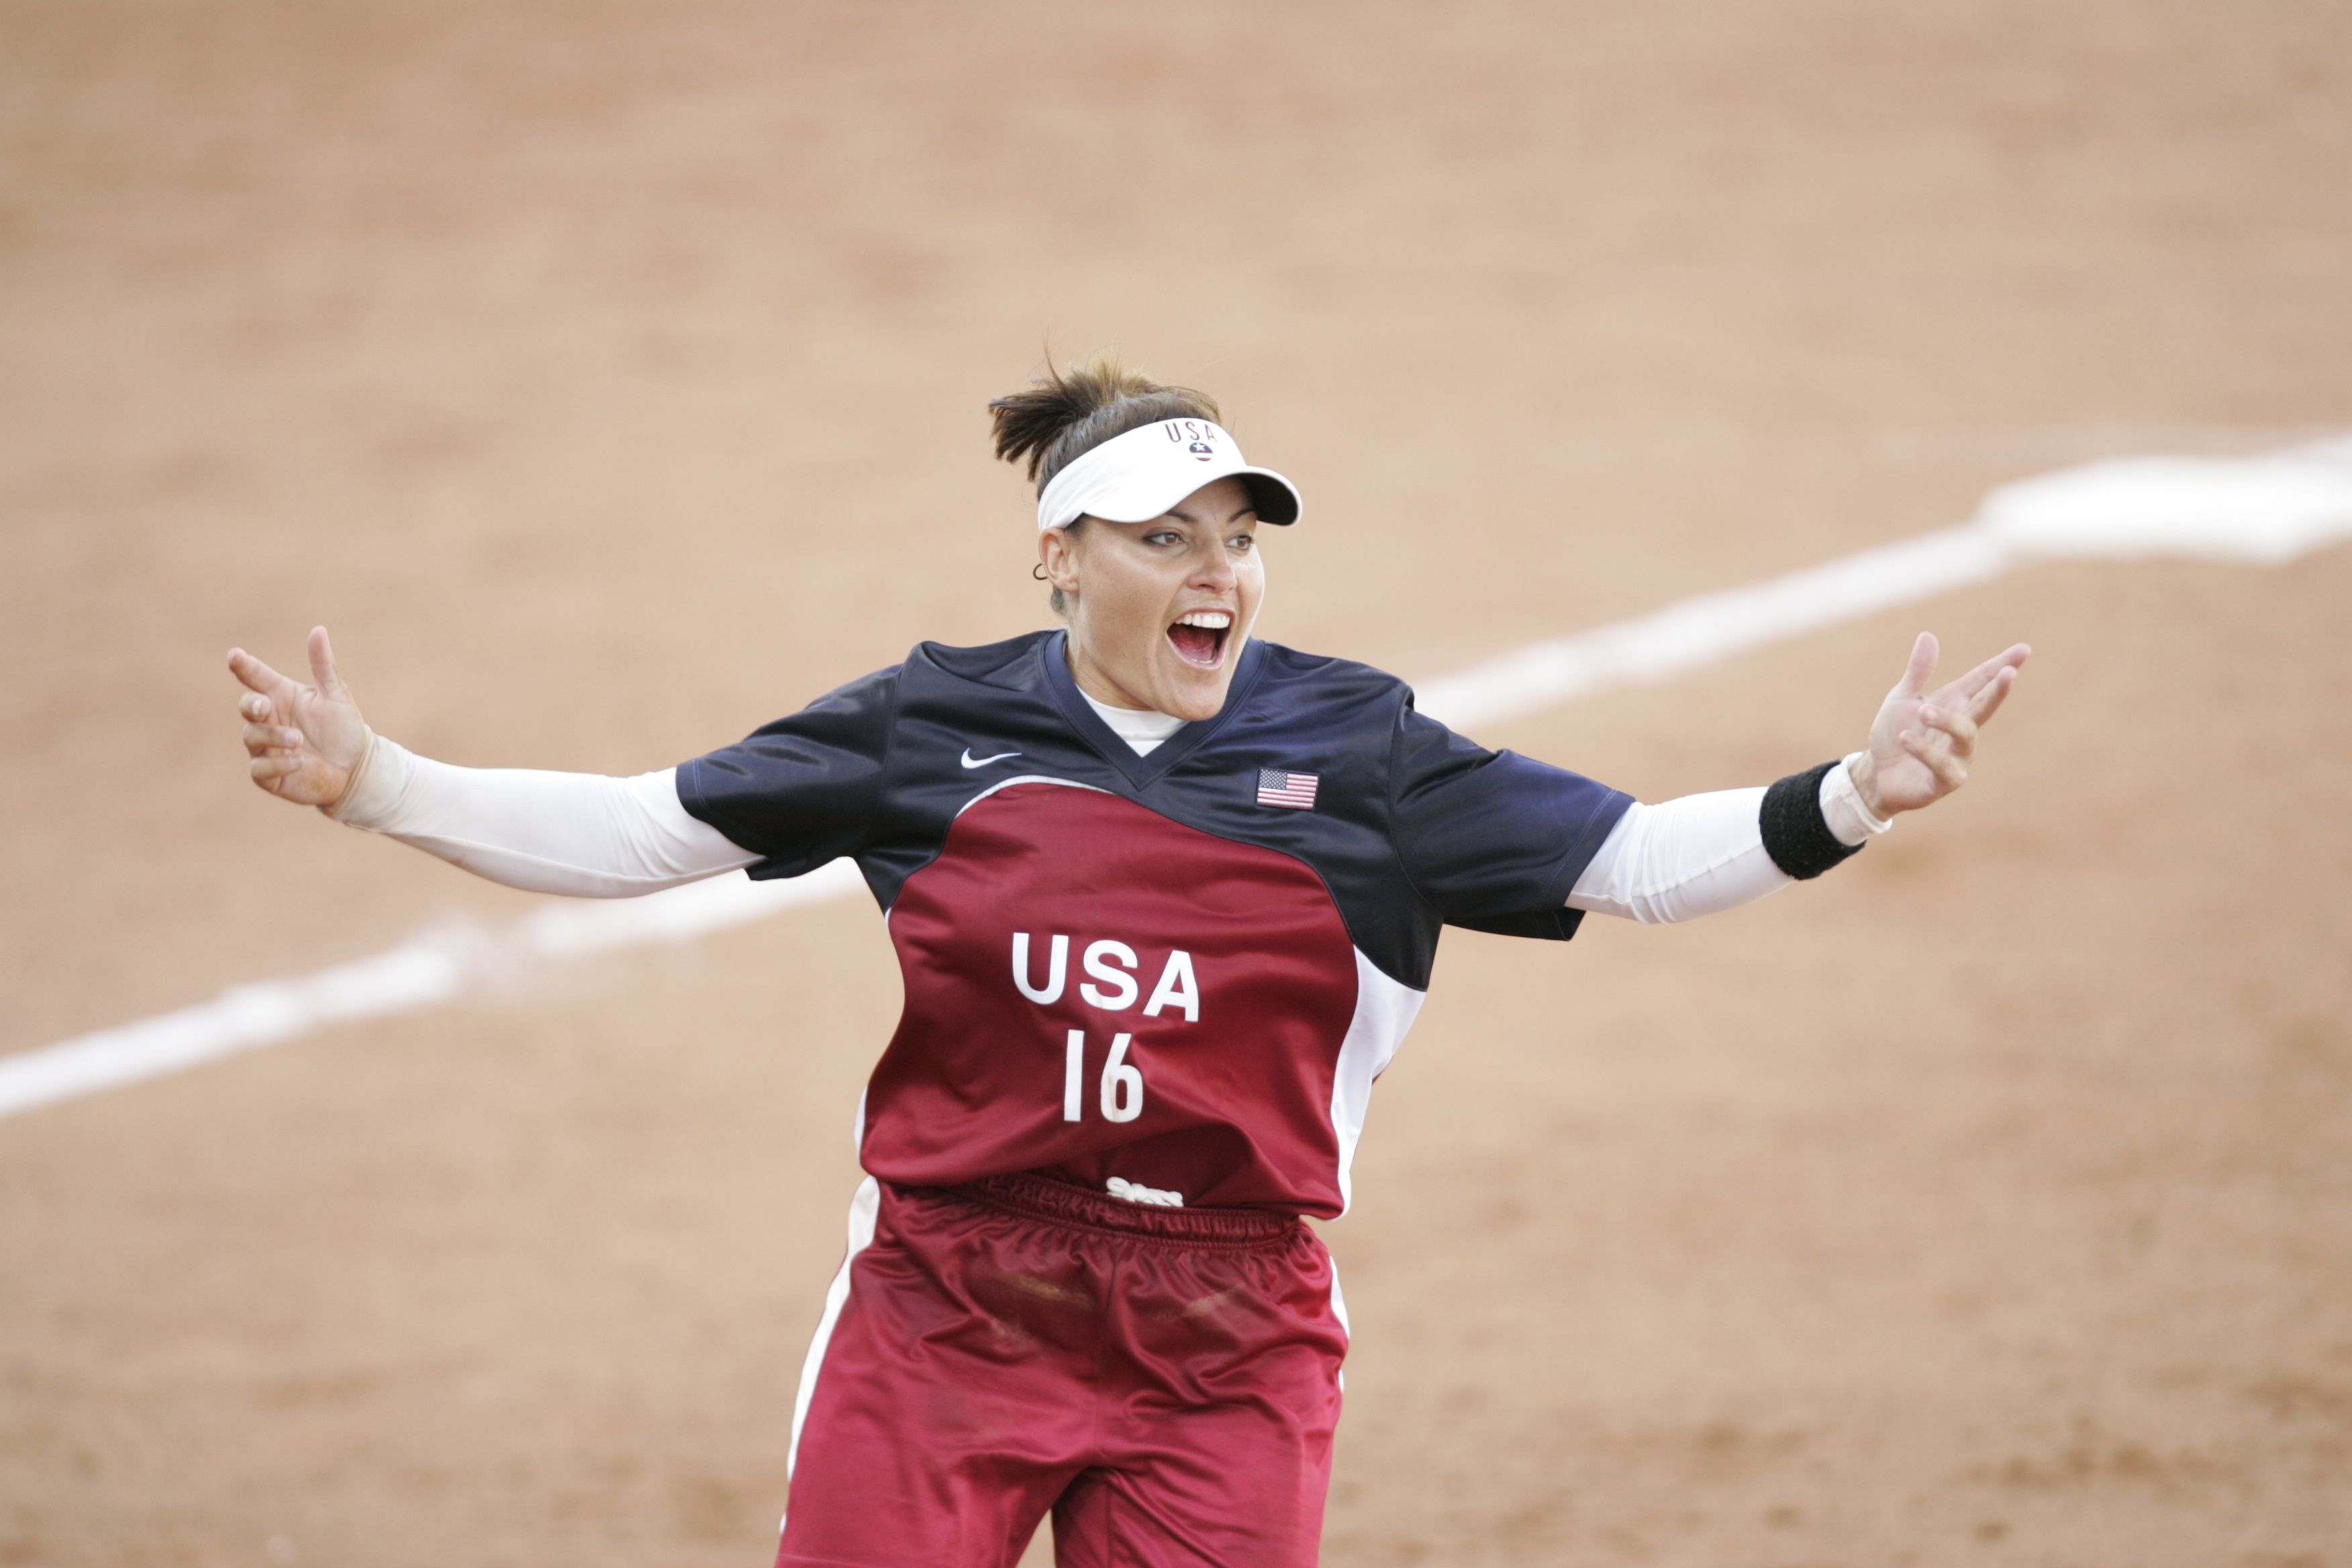 8/23/2004 -- ATHENS, Greece -- Softball GOLD Medal game USA vs Australia Lisa Fernandez of Long Beach, CA reacts to the final out and victory over Australia in the final on Monday in the Olympic Softball Stadium. Photo by Robert Hanashiro, USA TODAY Athens 2004 Olympic Games (Via MerlinFTP Drop)